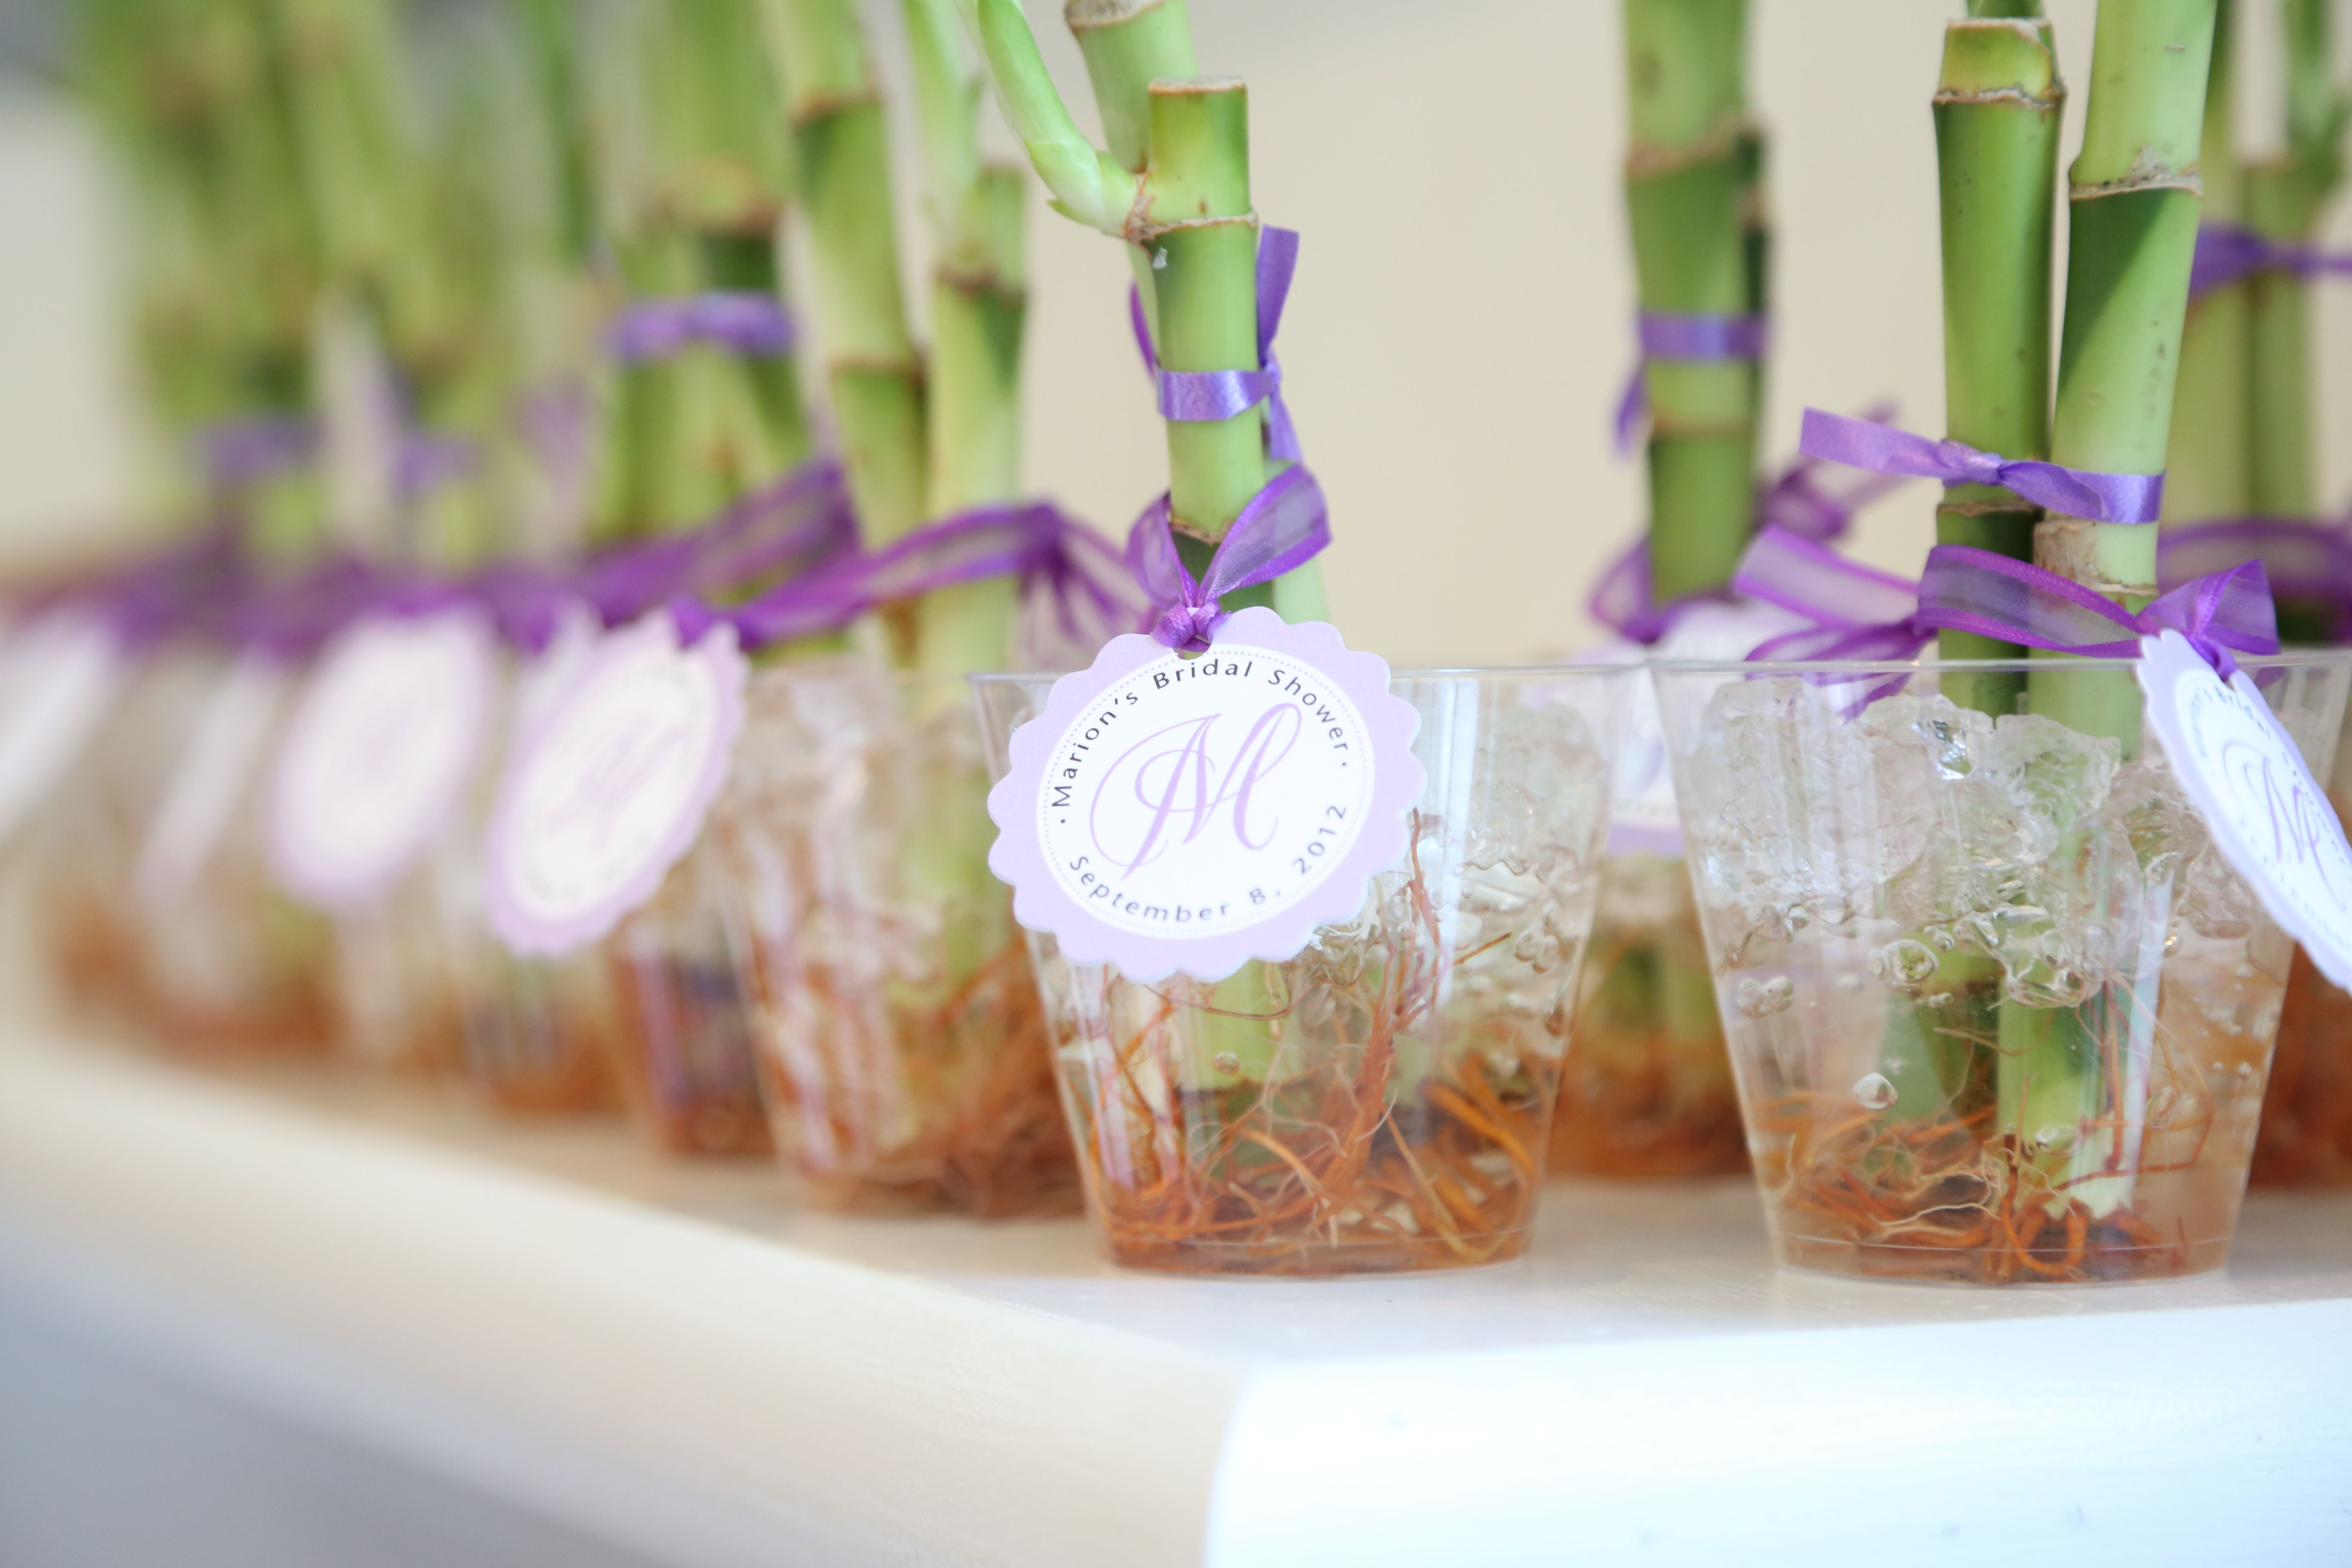 Lucky bamboo giveaways with personalized monogram tags